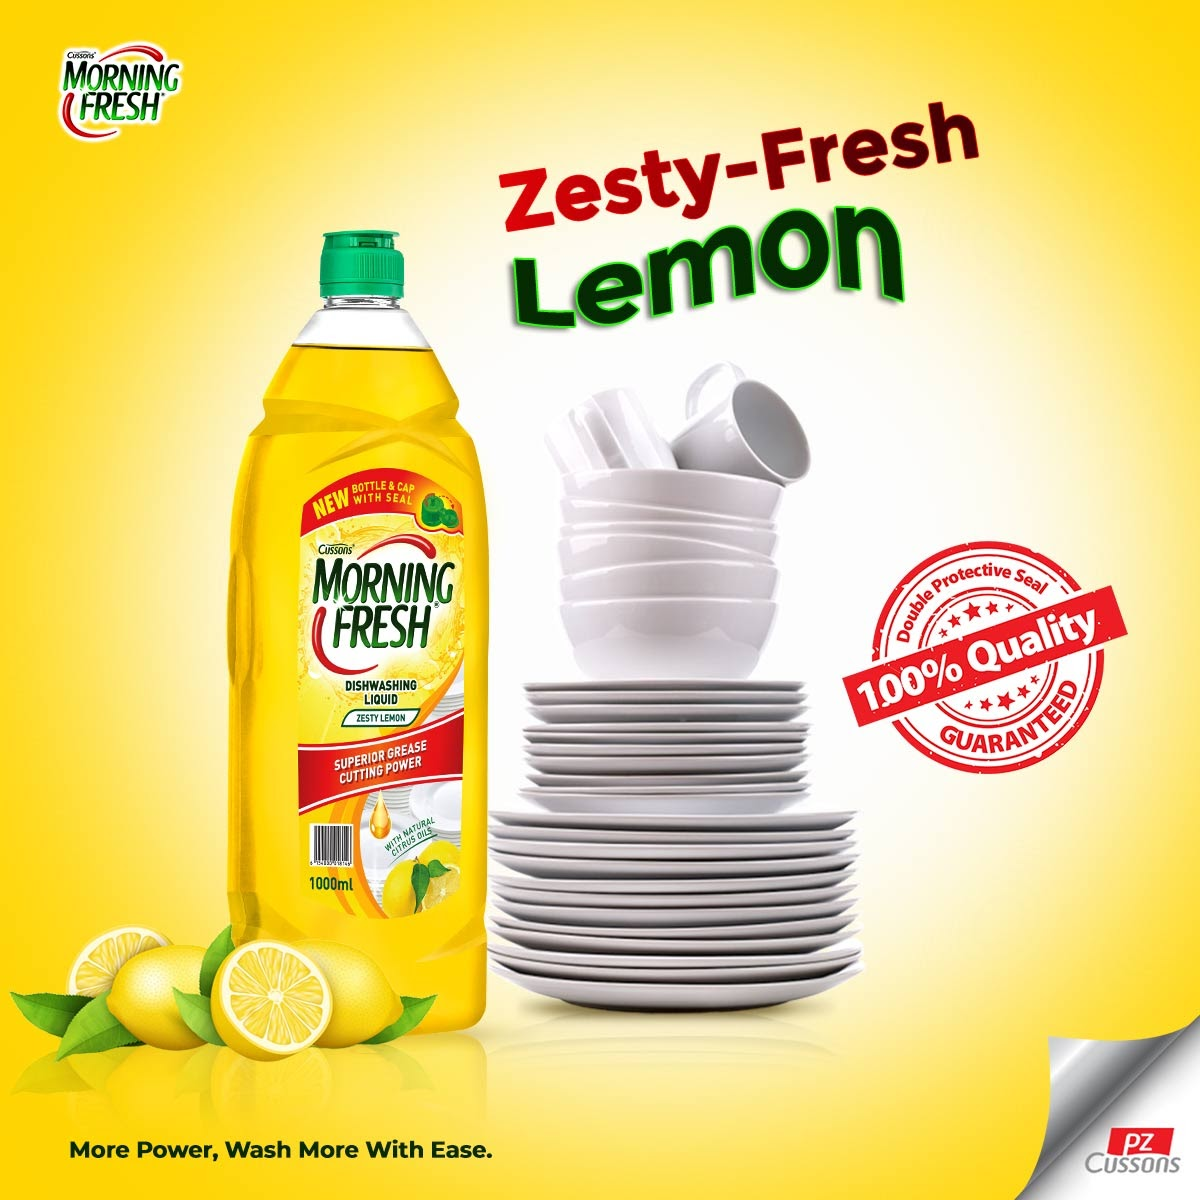 There's only one formula that can keep your Kitchen sparkling clean and sweet-smelling all day. And that's the Morning Fresh Zesty Lemon! Go get yours today. #MorningFresh #Dishwashingliquid #Kitchen #Squeakyclean #Dishwashingpic.twitter.com/QPa7TBlJfG